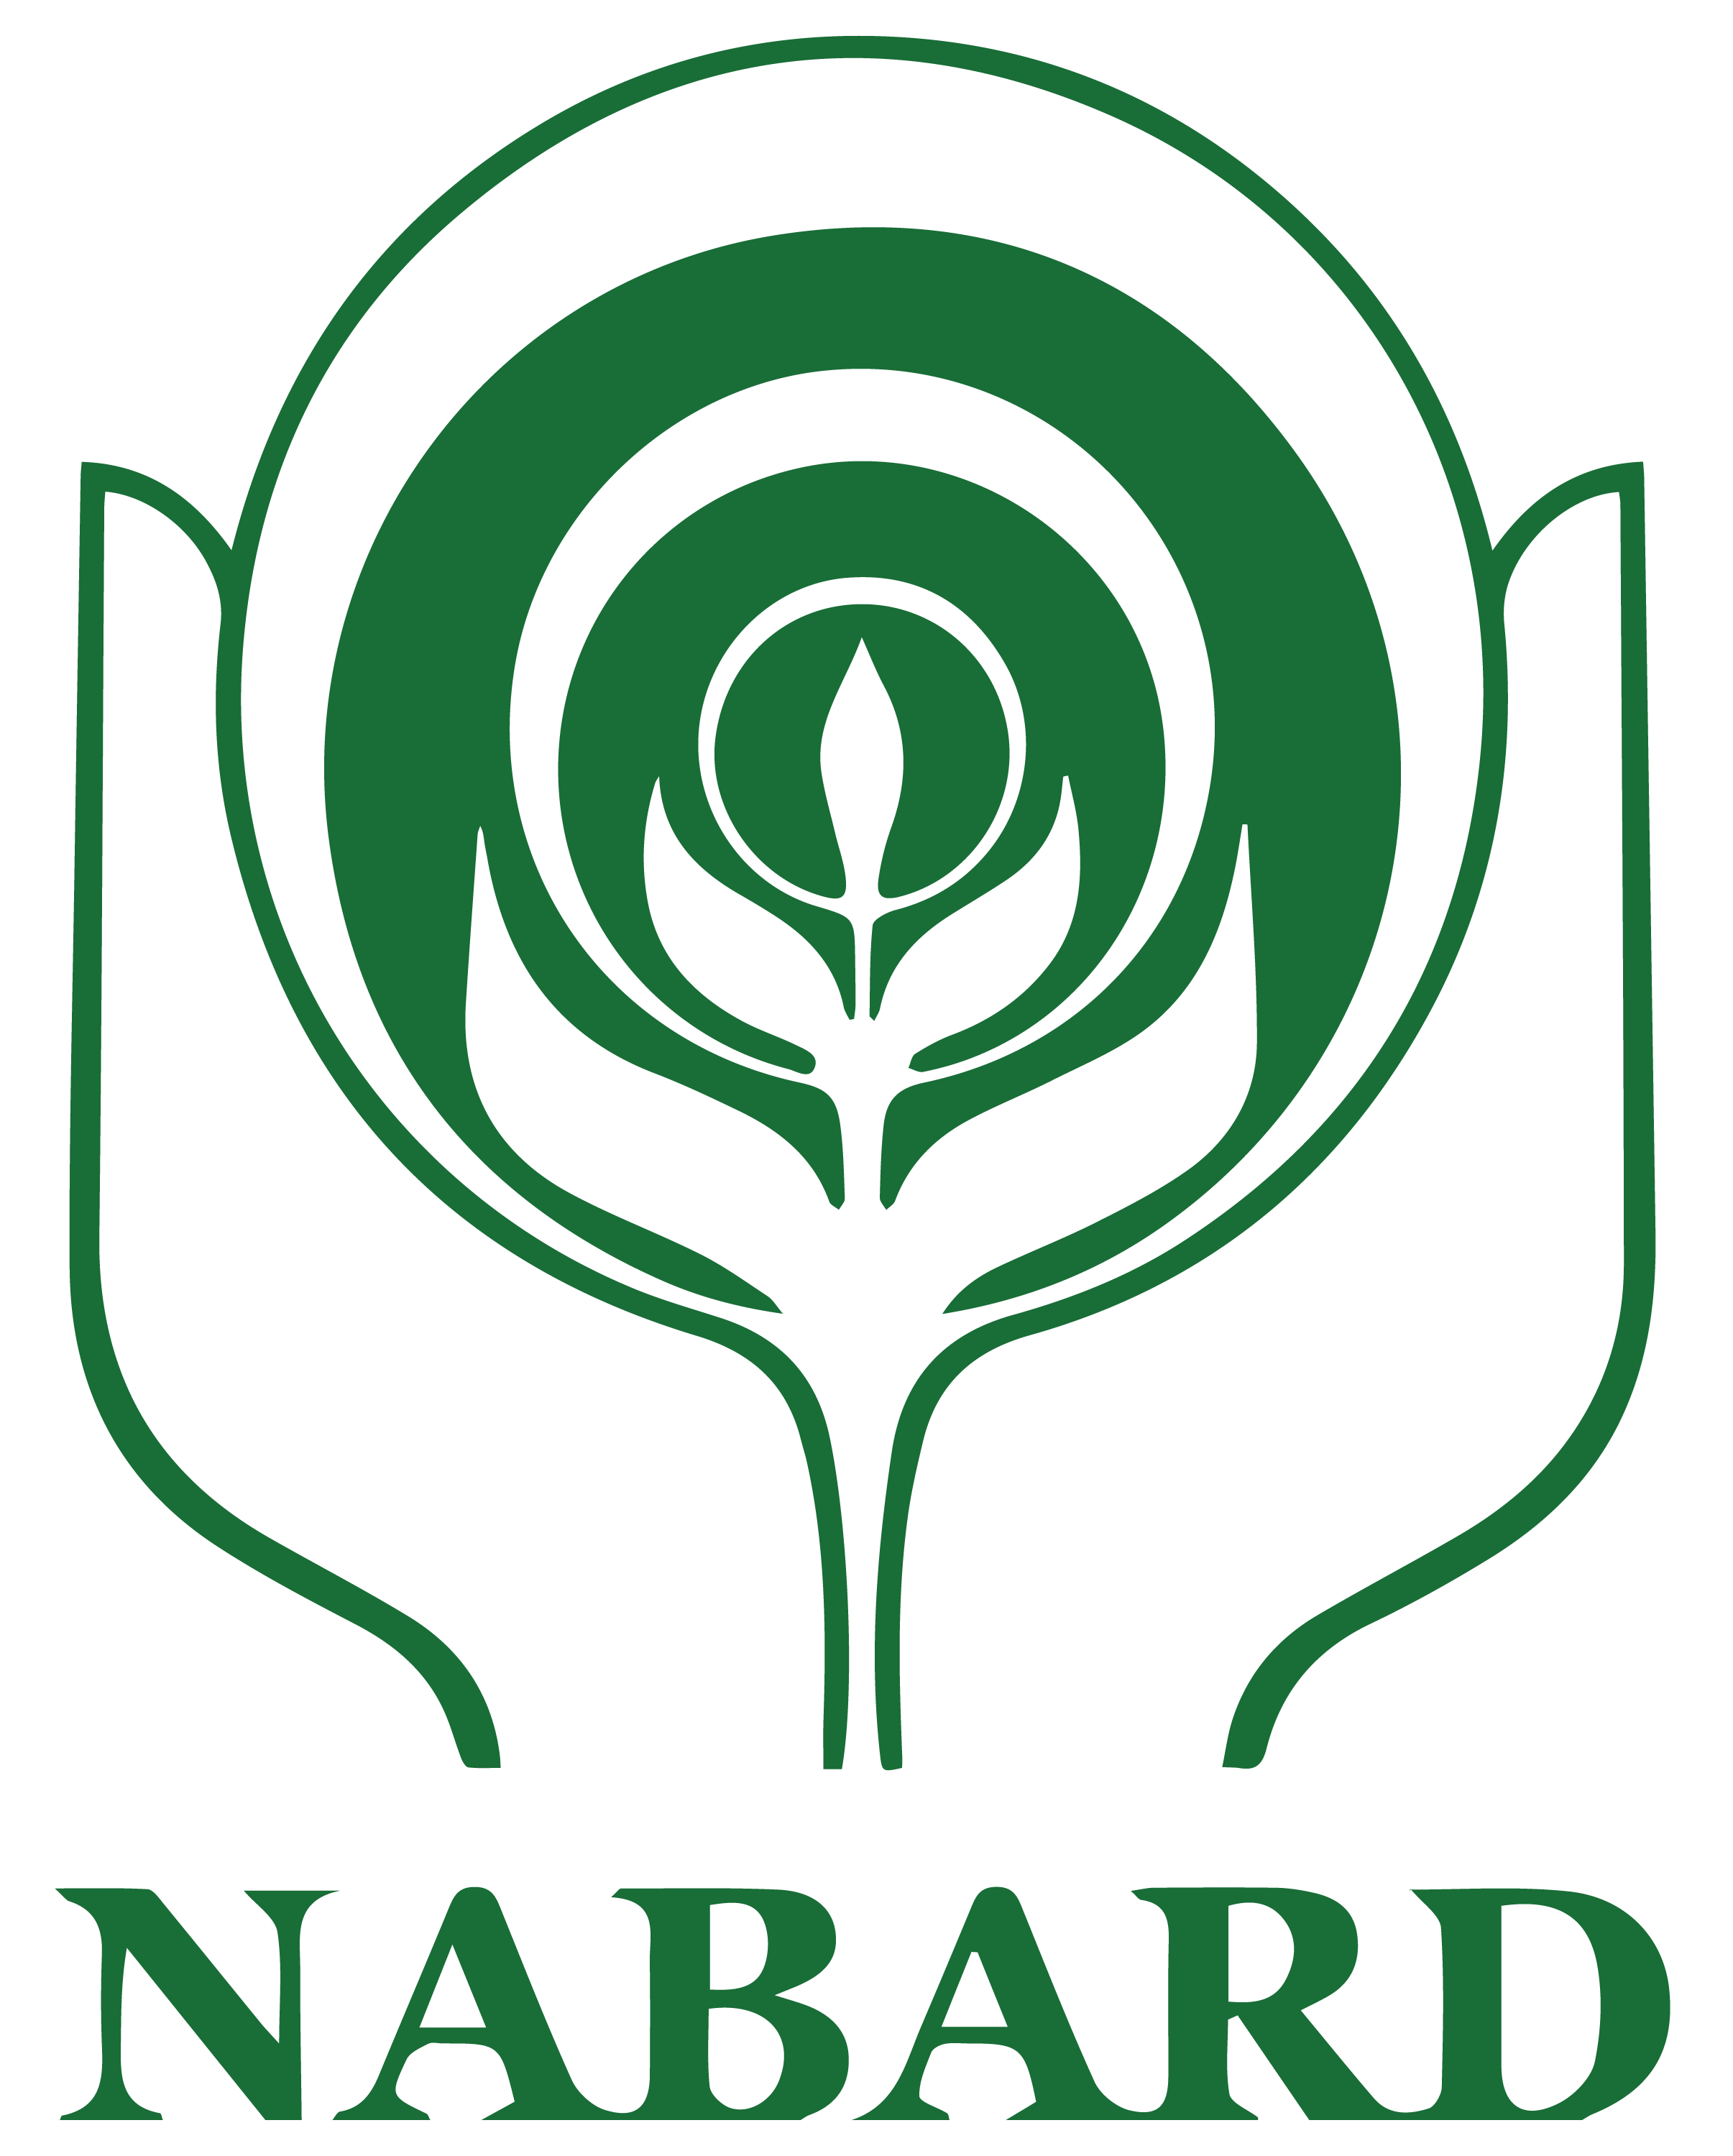 NABARD Office Attendent